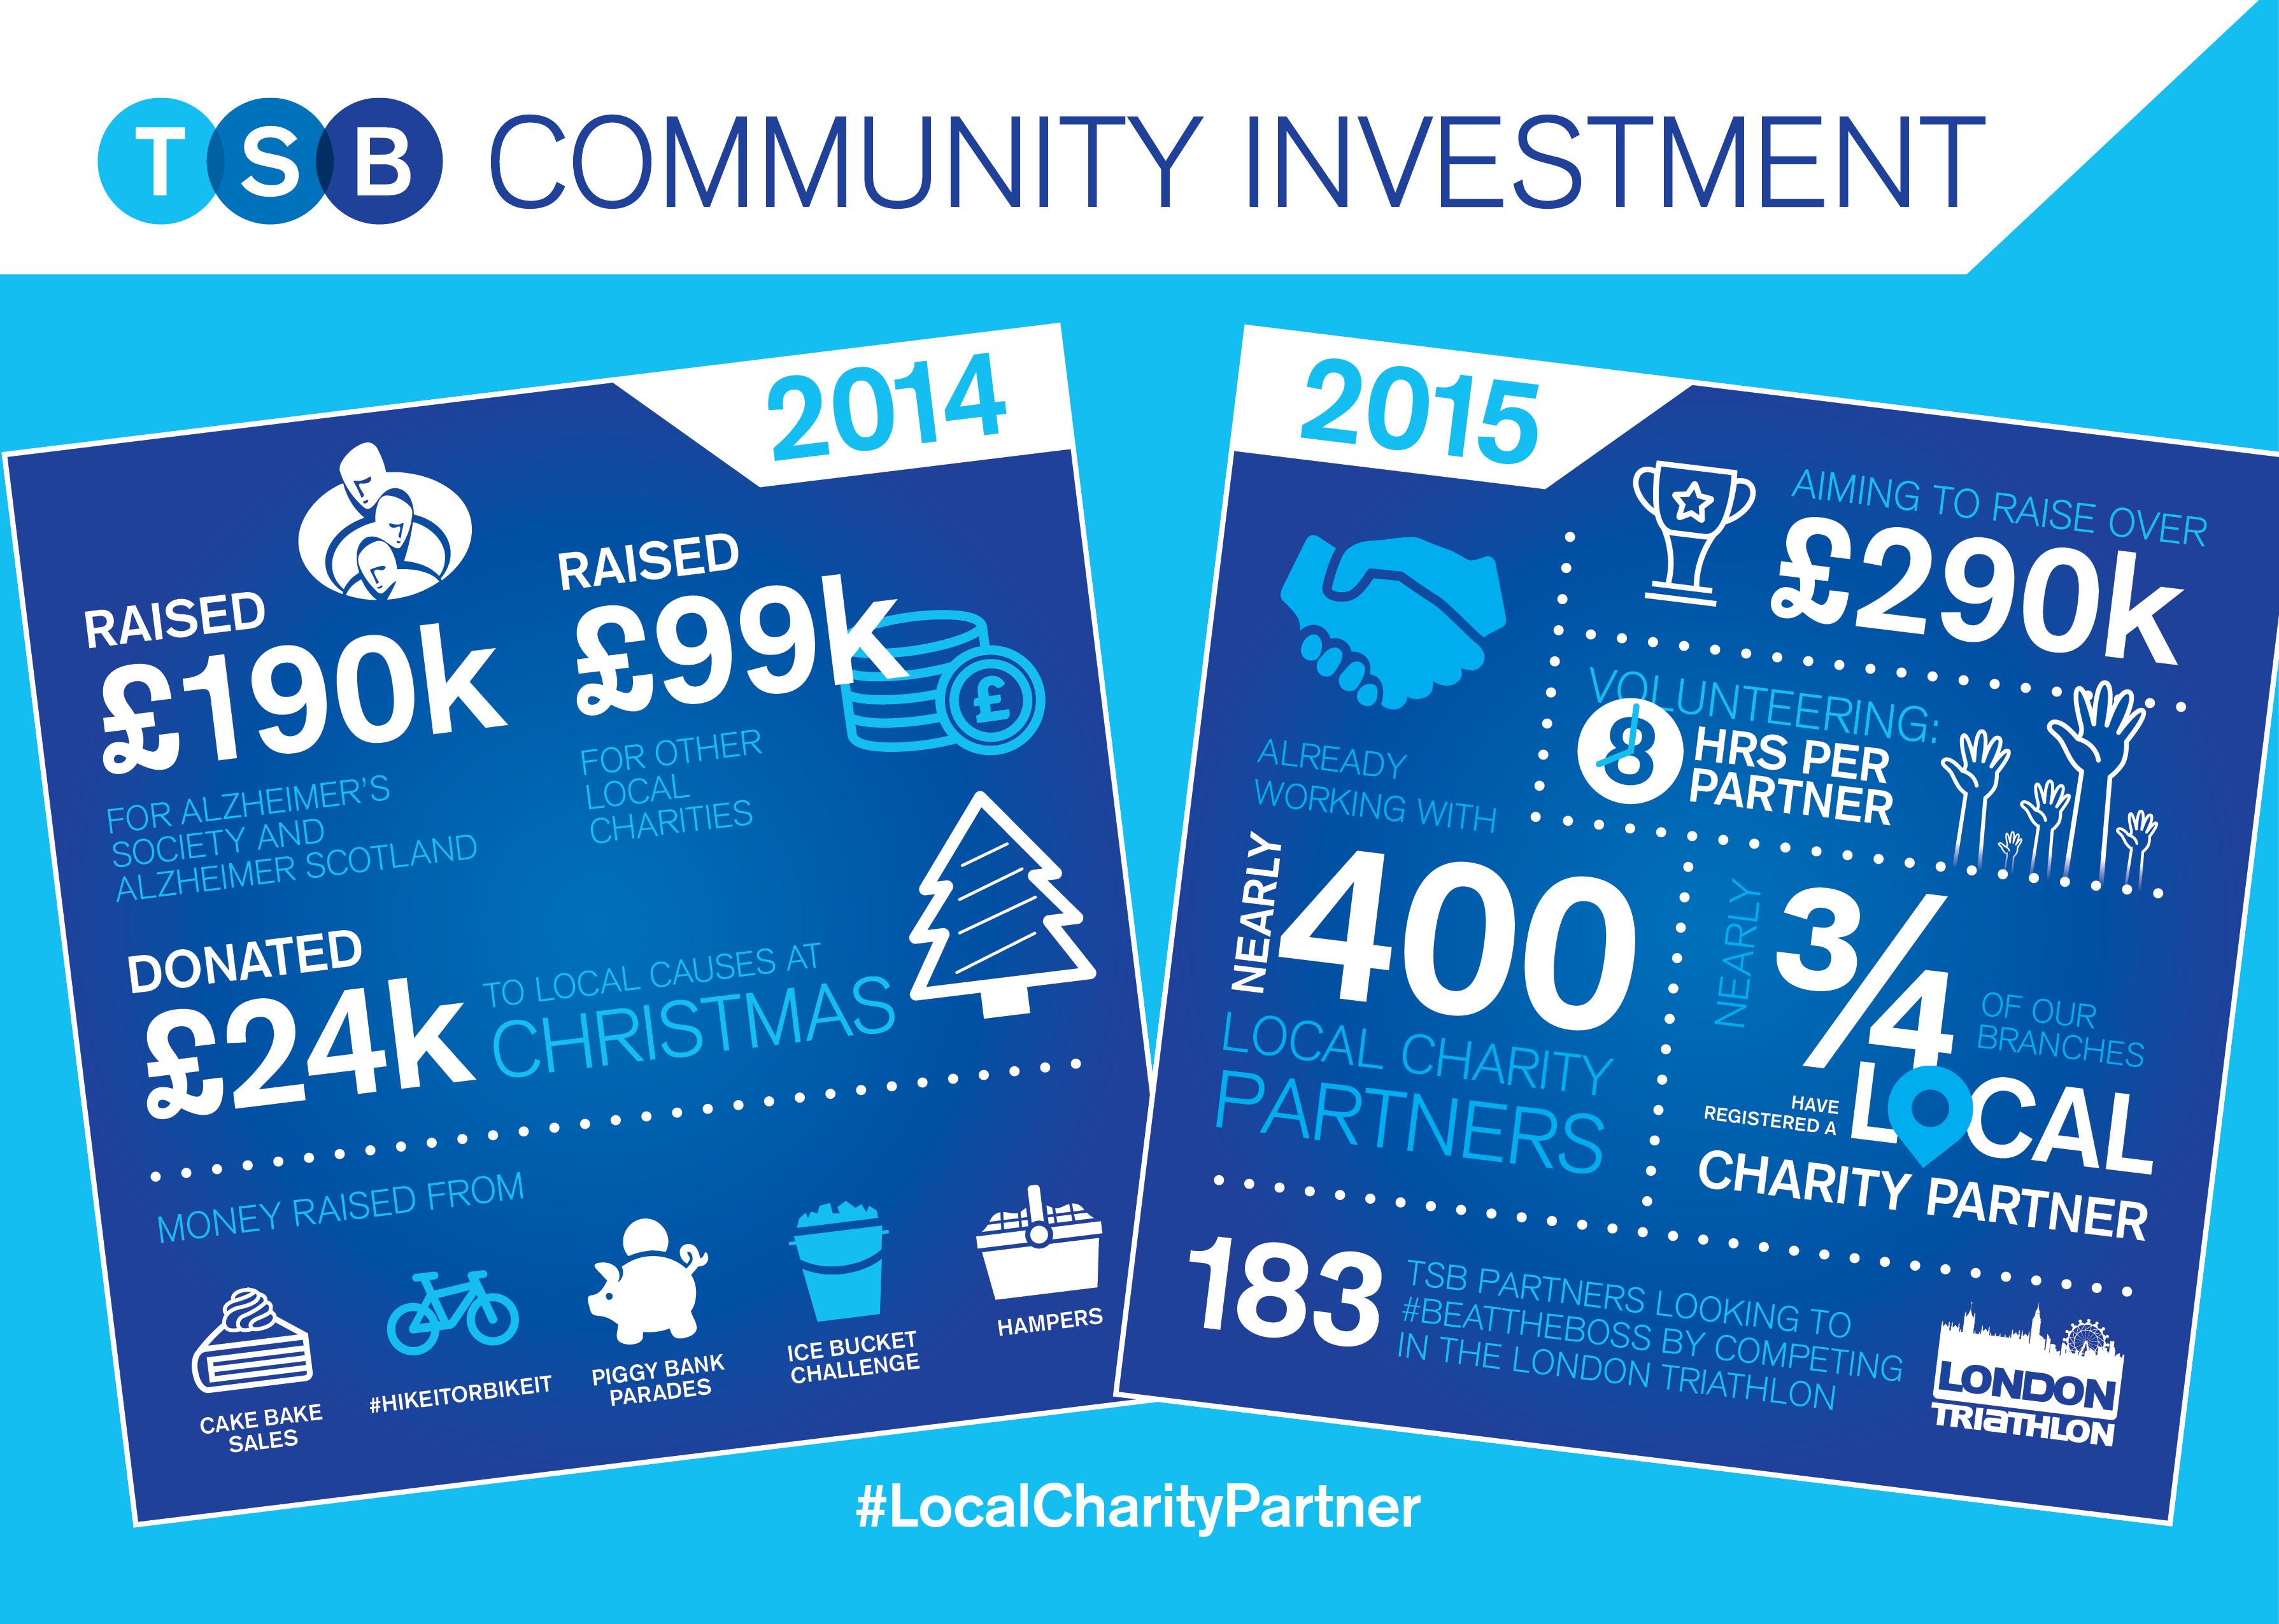 TSB-Community-Investment-Infographic